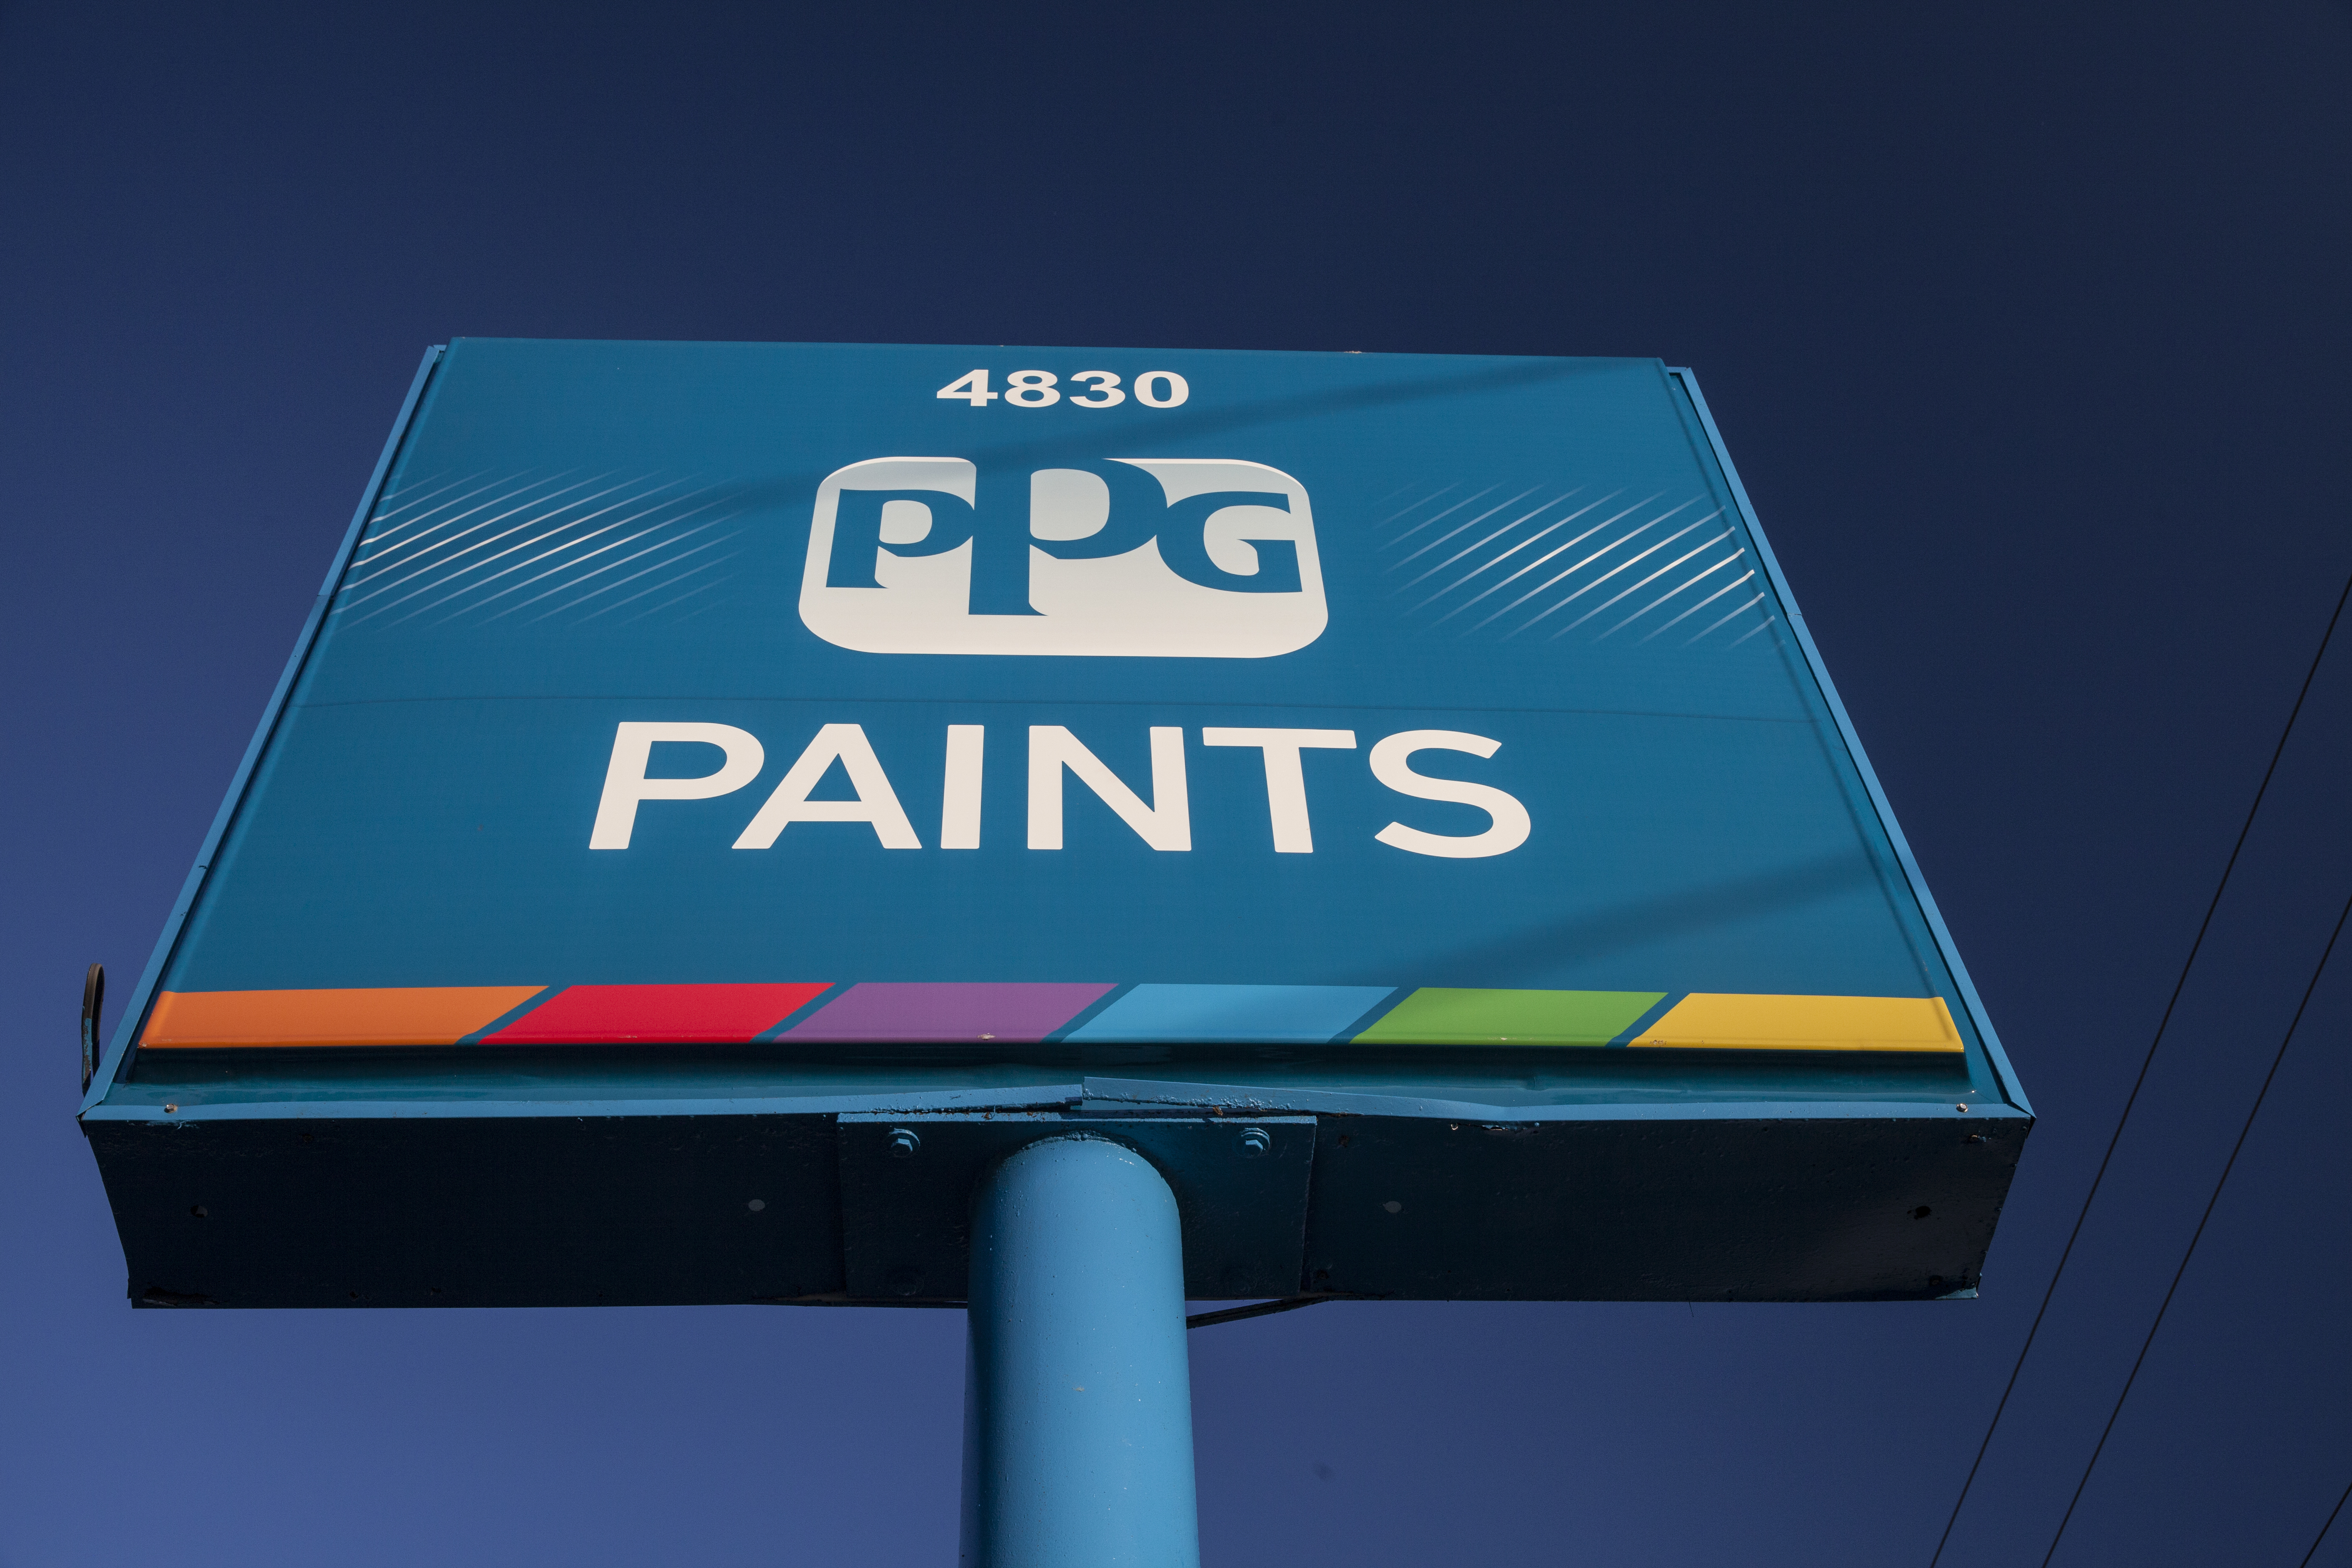 Ppg Opens Ppg Paints Stores In Pittsburgh Ppg Paints